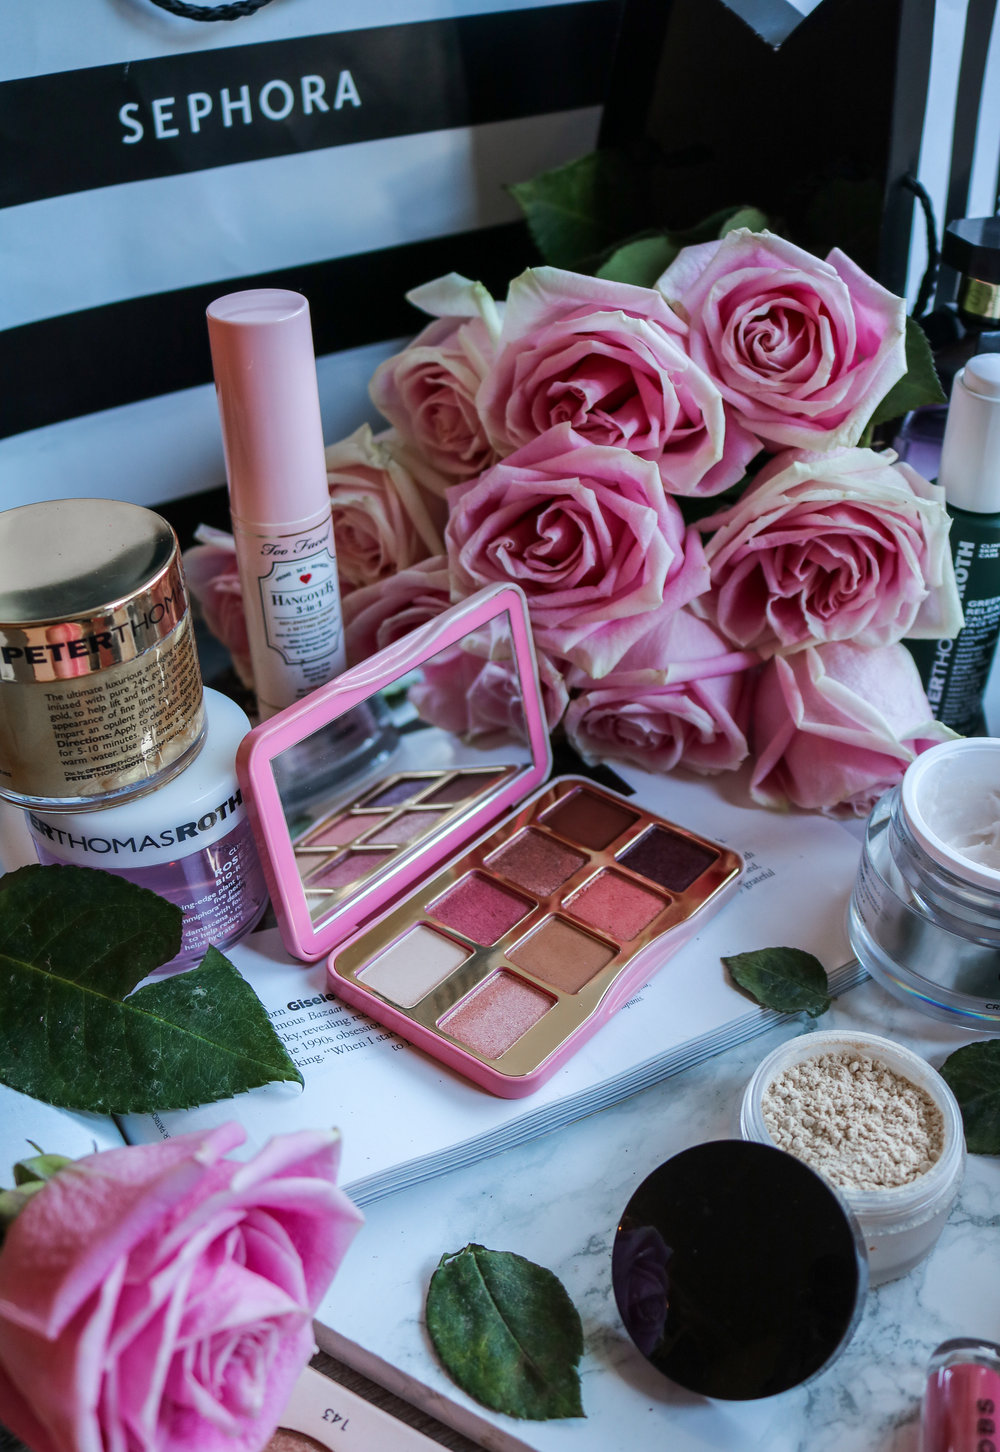 The Hungarian Brunette - Shopping at Sephora, my tips and tricks to get the best bang for your buck